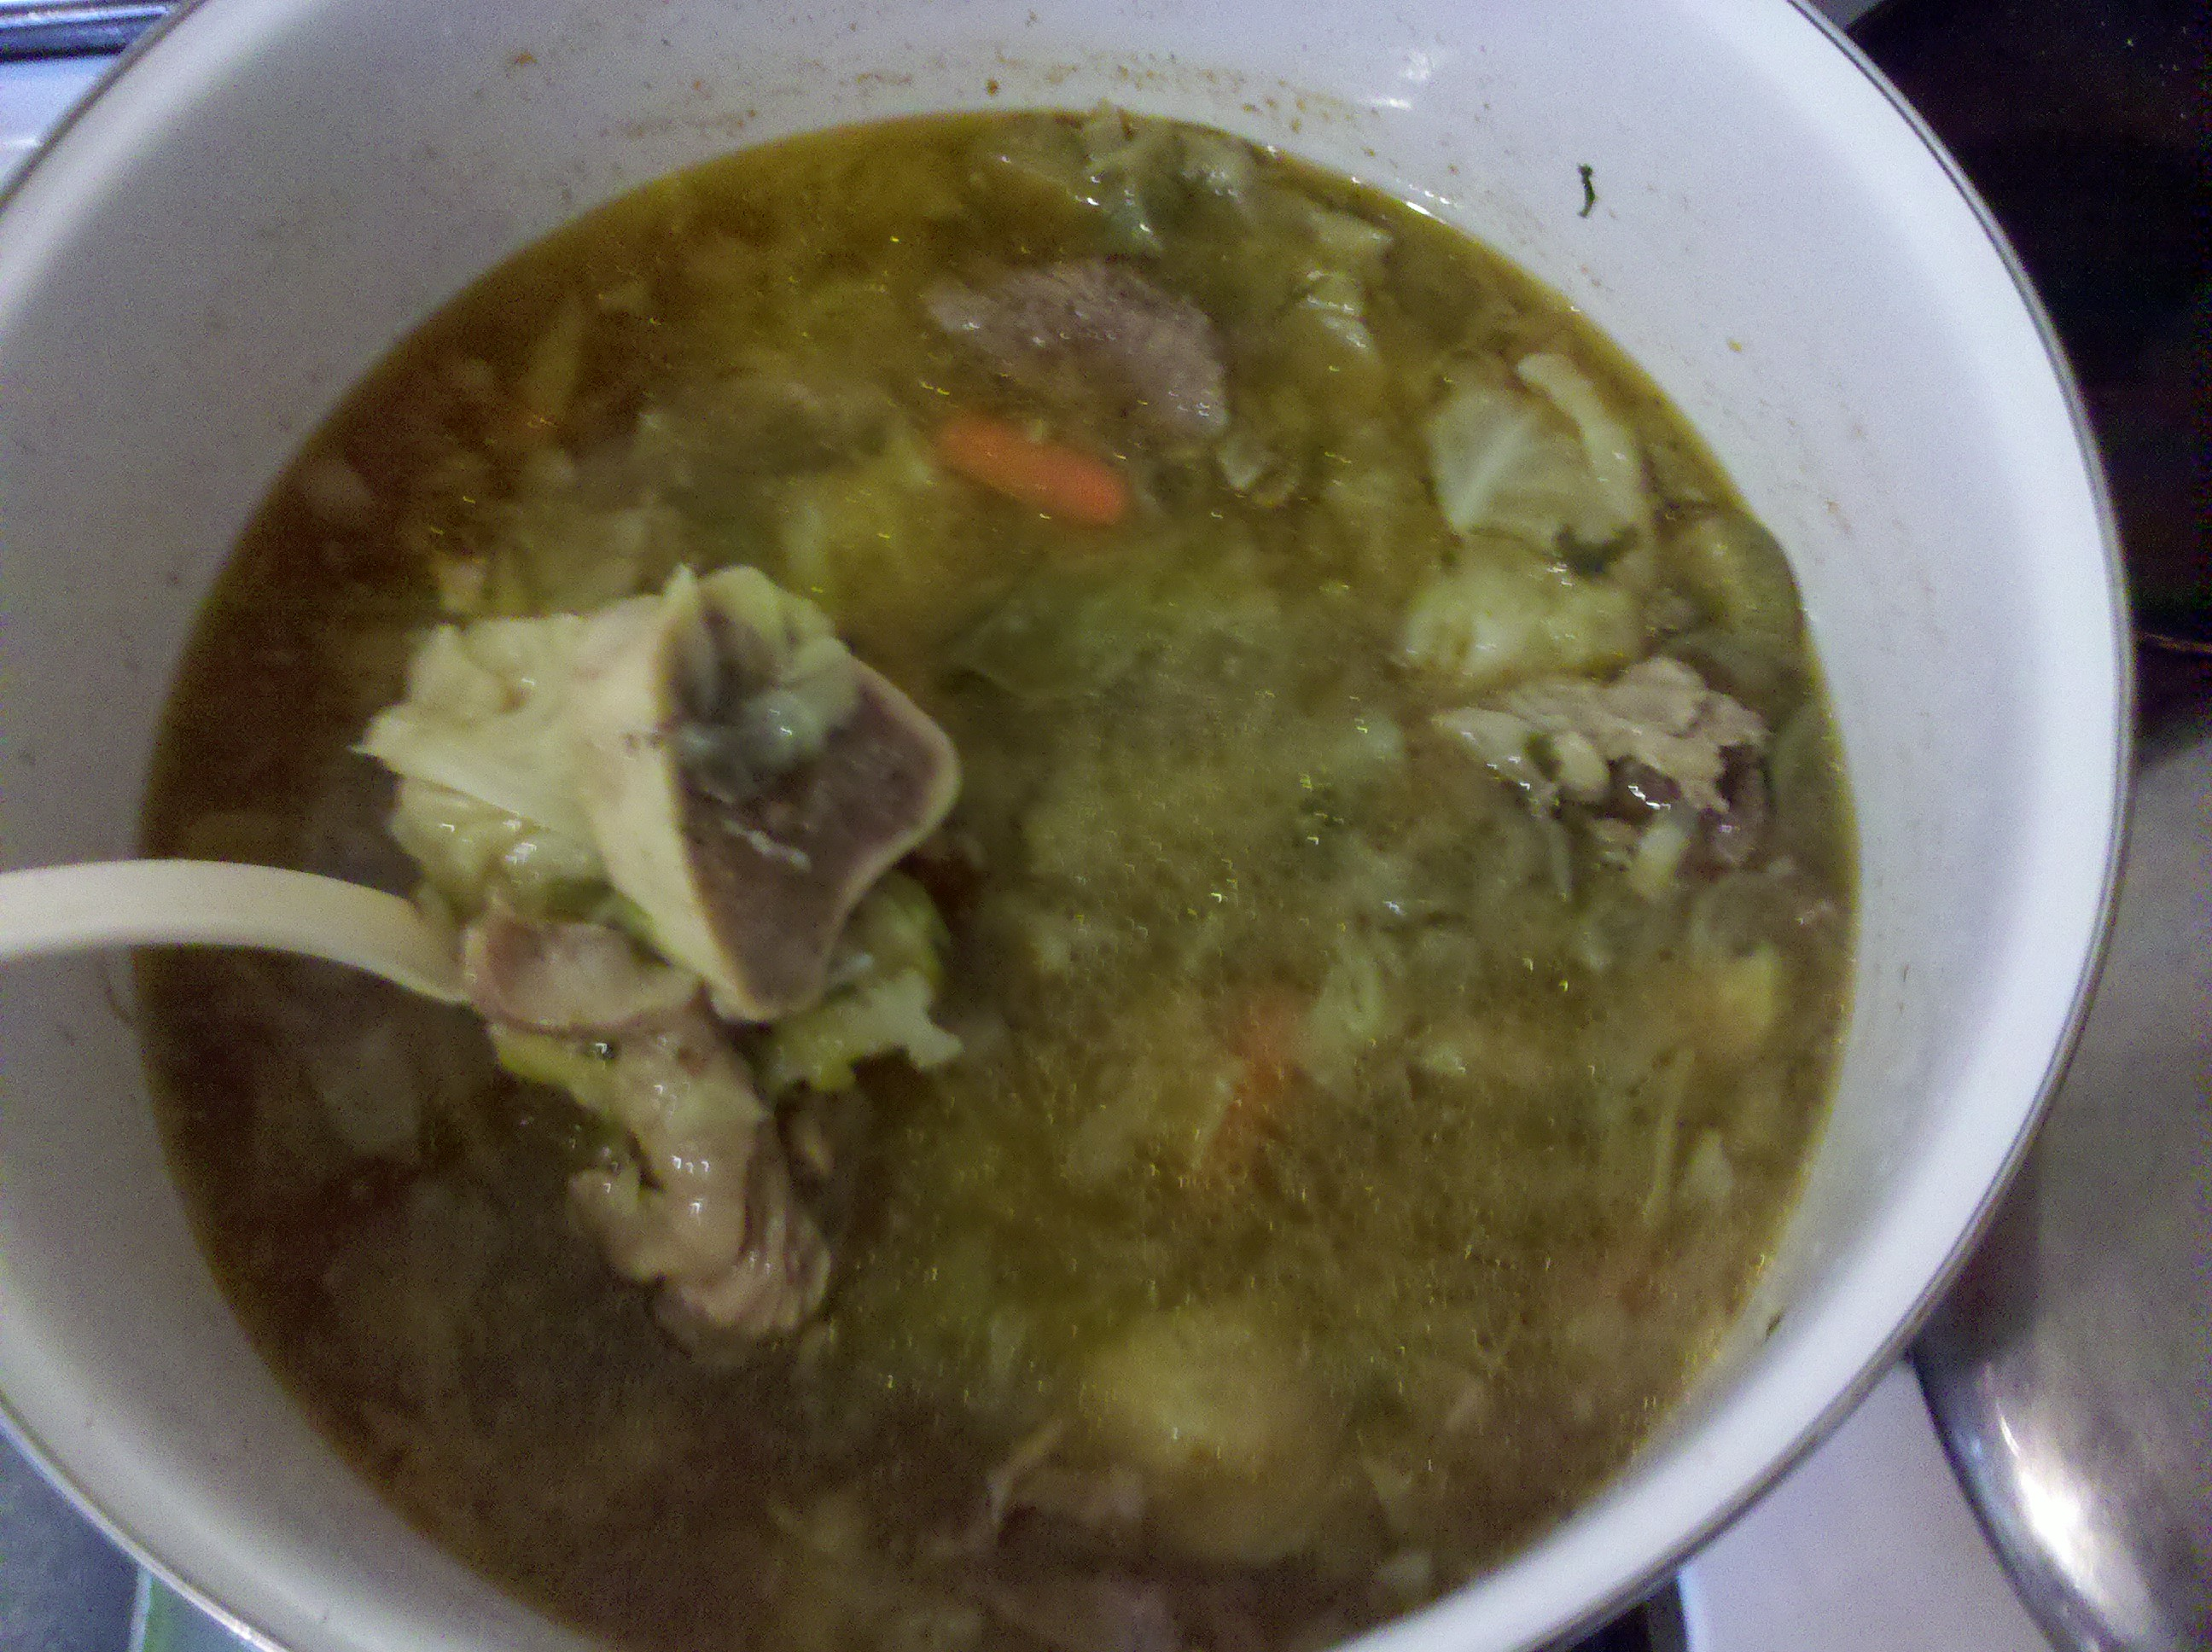 Texas :: Caldo de Res (Mexican beef stew)  This has your average soup. Great for hangovers